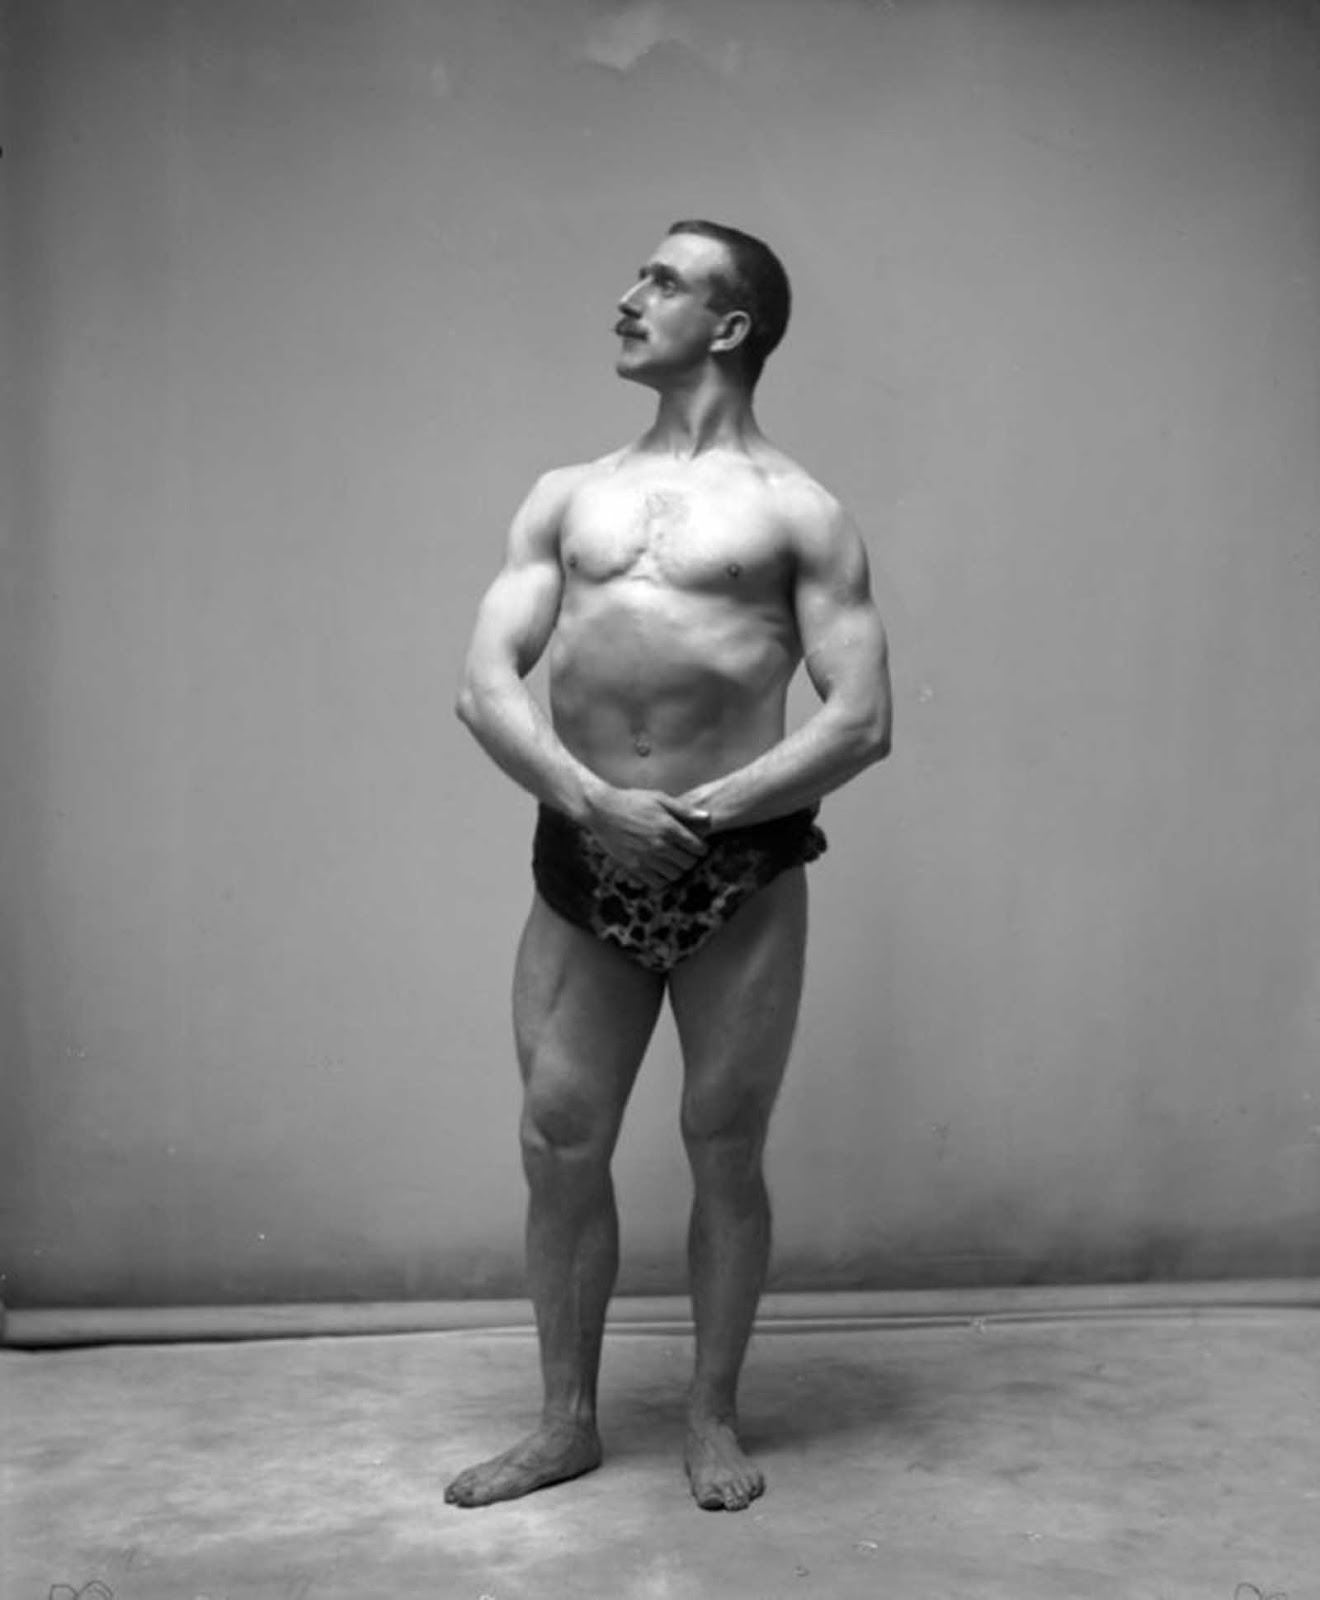 Mr. Murray, winner of the Sandow bodybuilding competition in 1905.